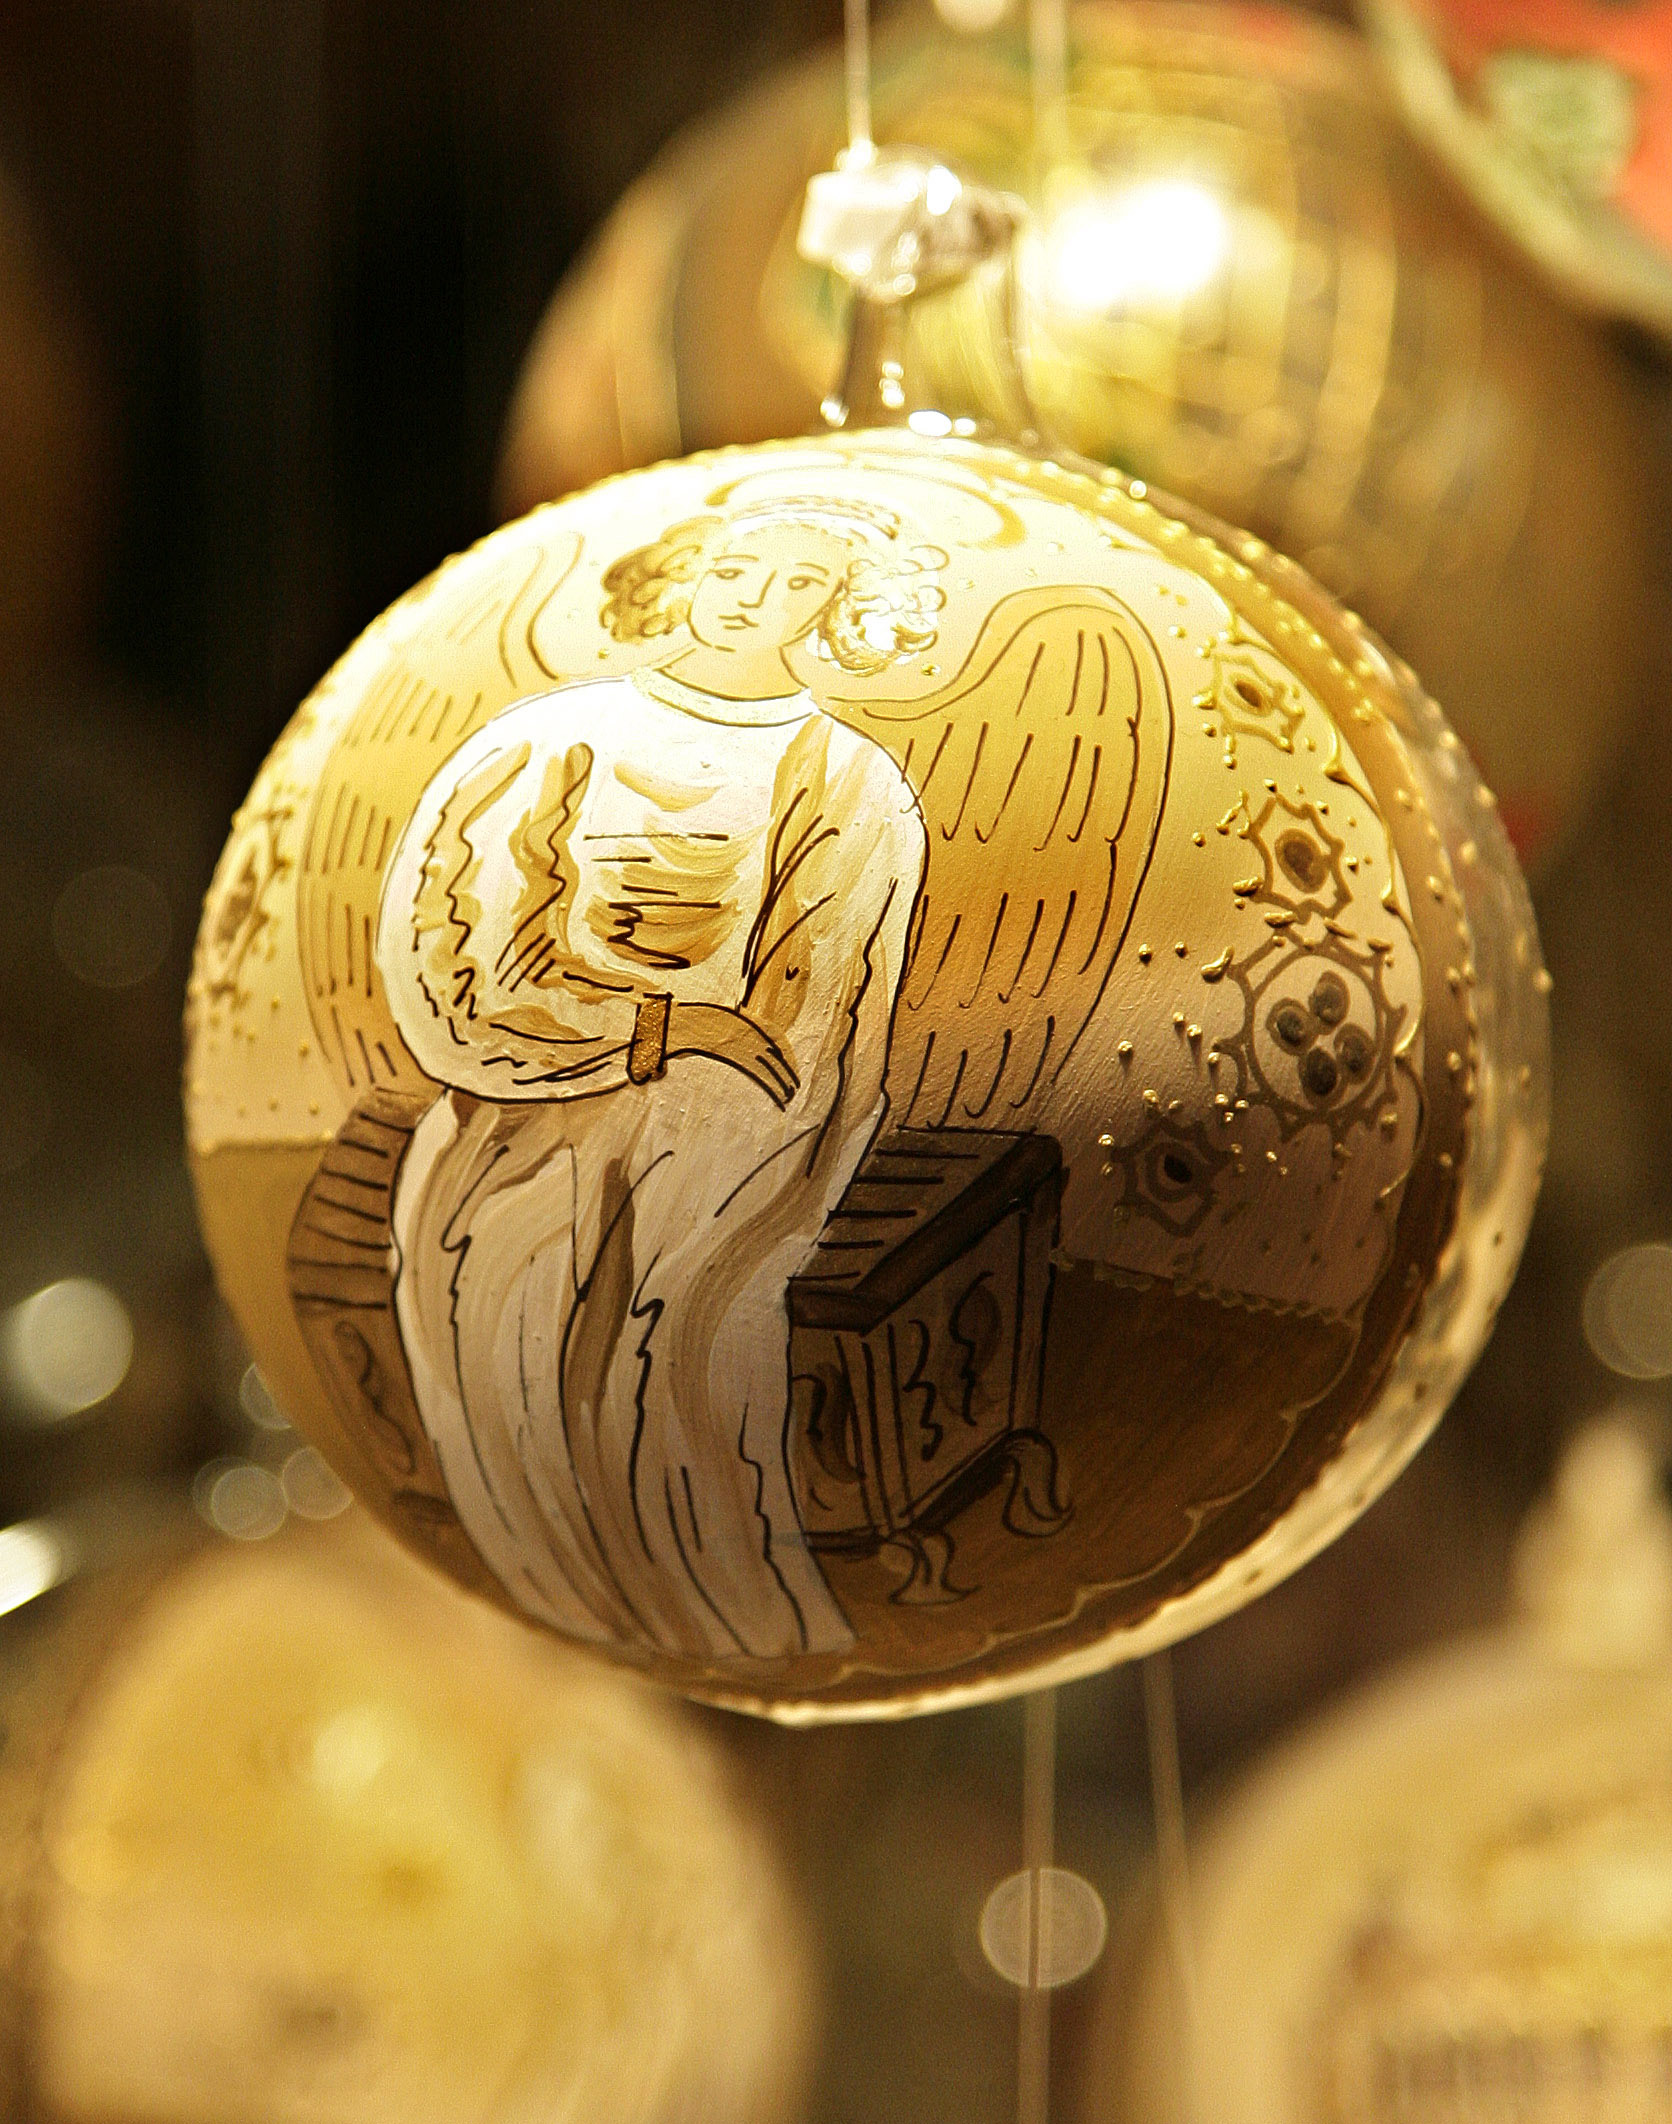 A Christkind painted on a Christmas tree ornament at a stand in Vienna.